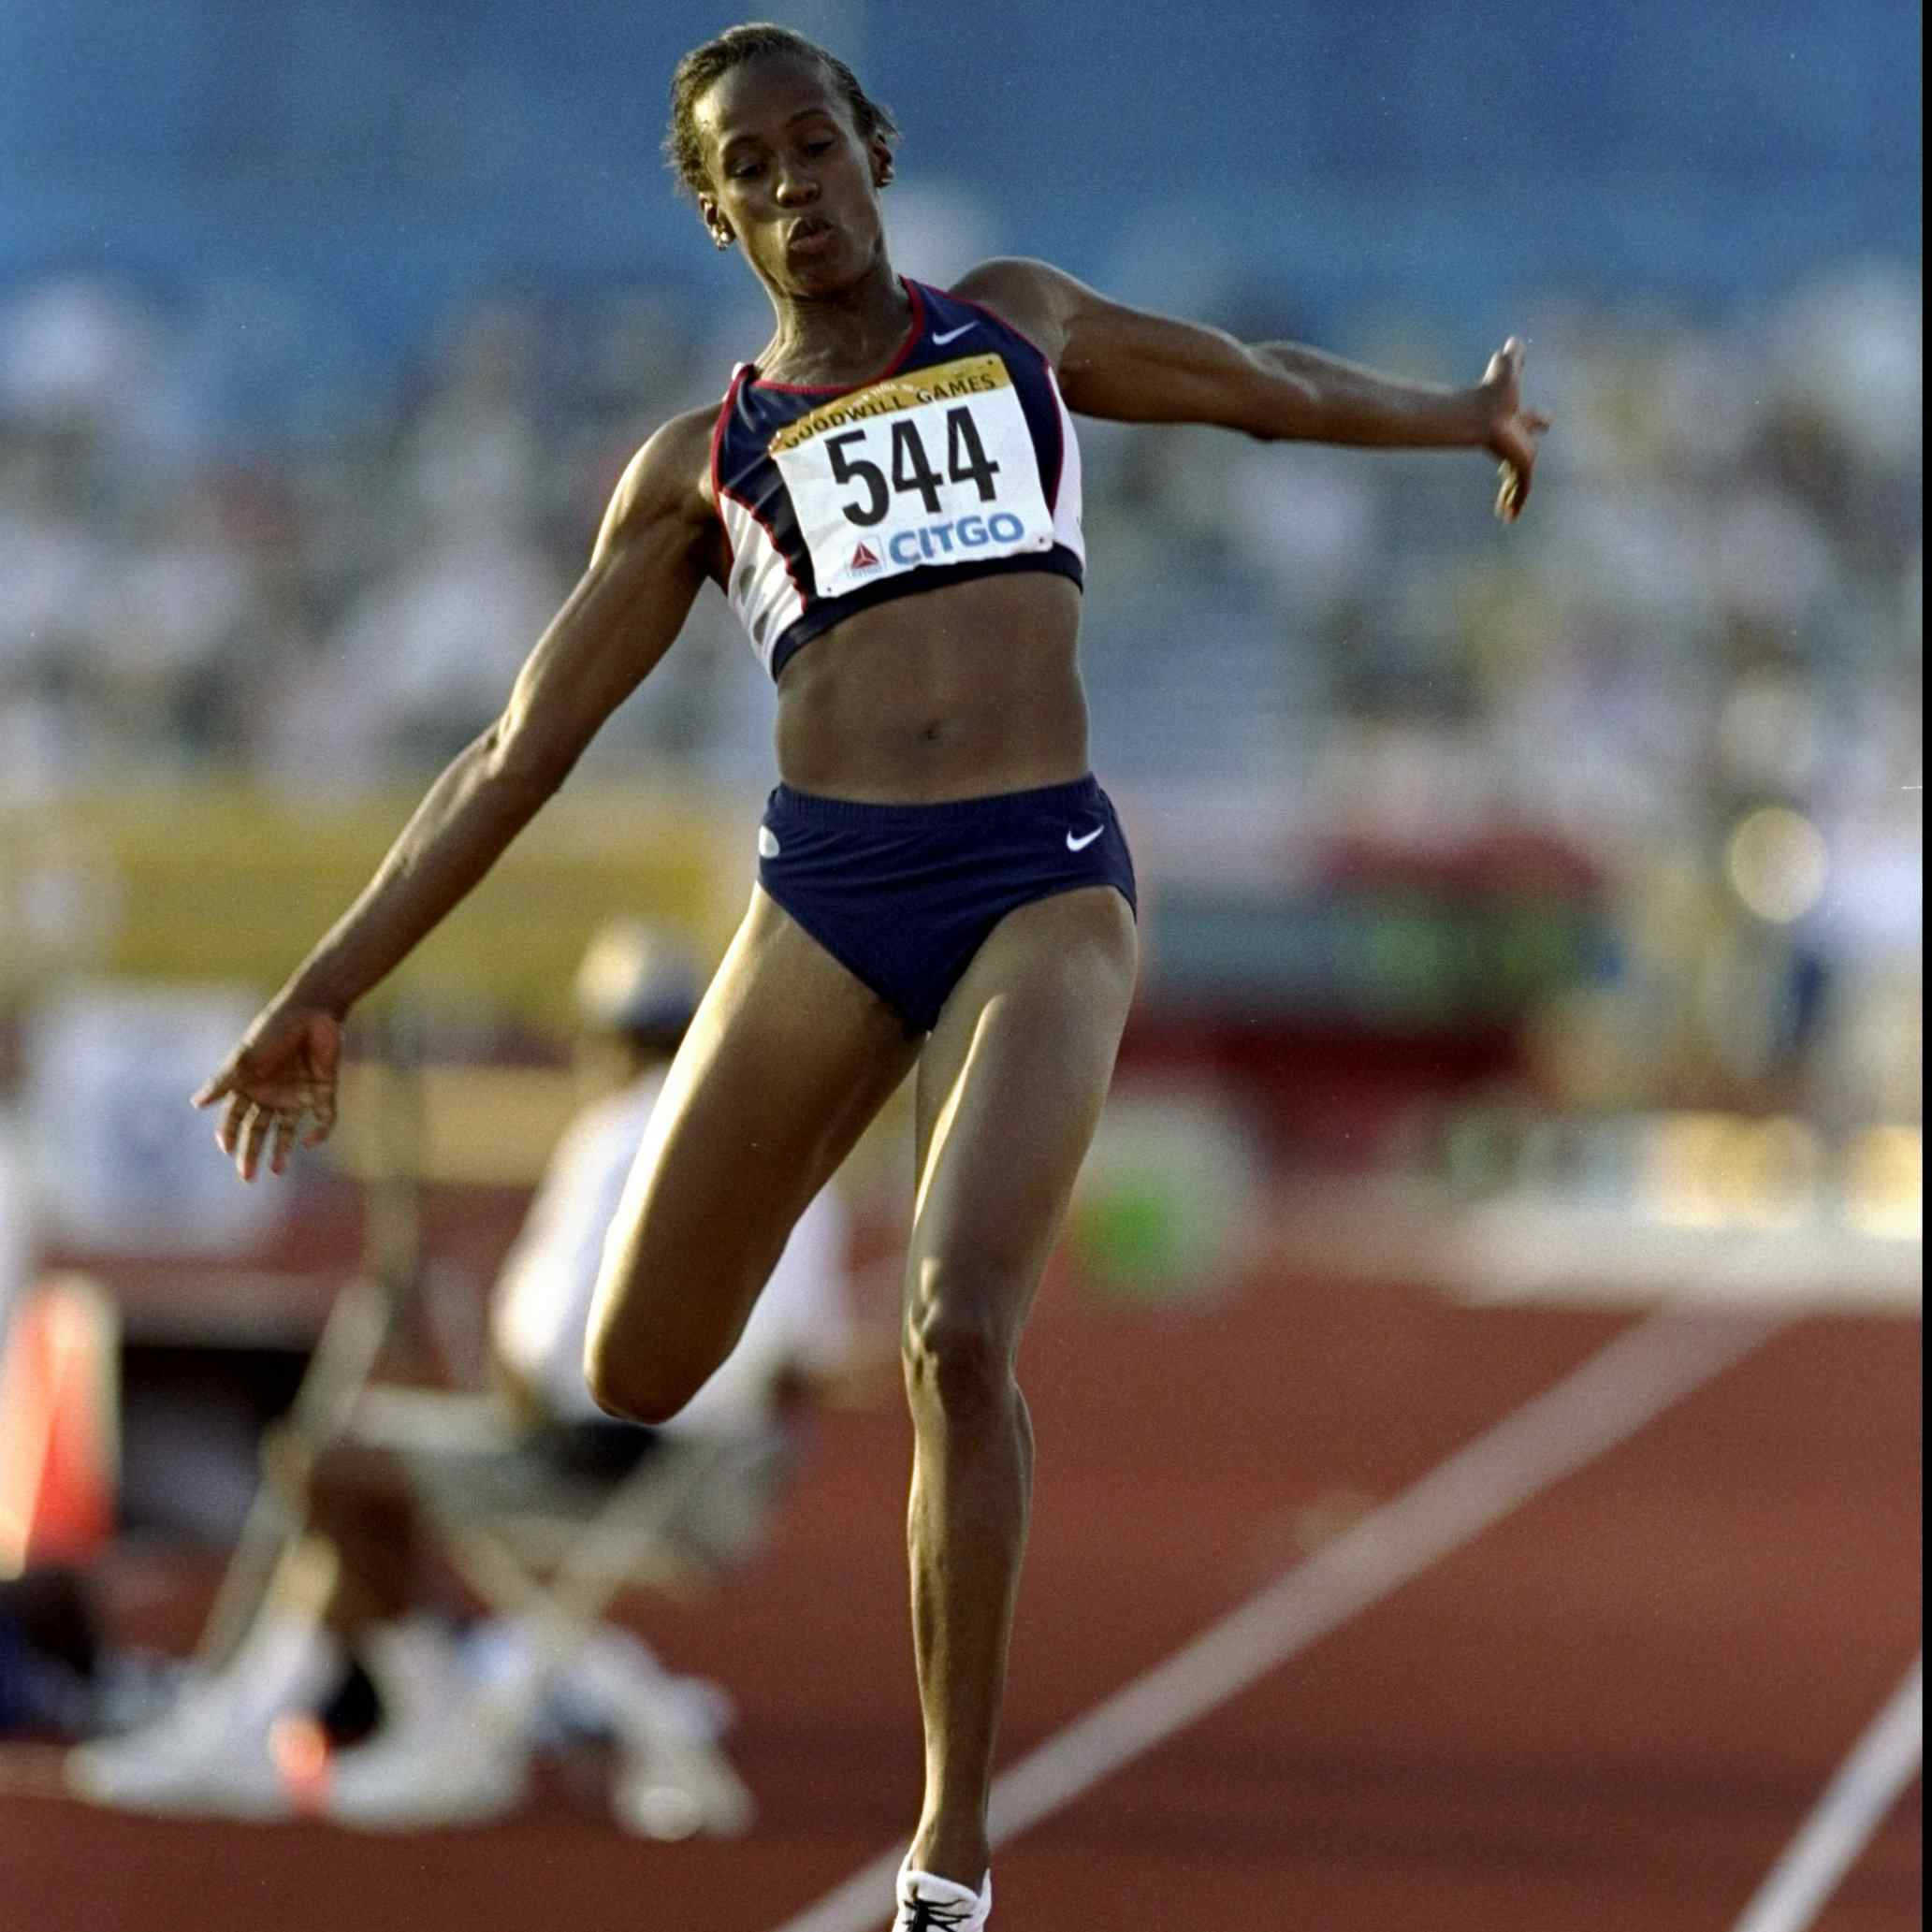 Jackie Joyner-Kersee #544 of the USA competes in the Long Jump